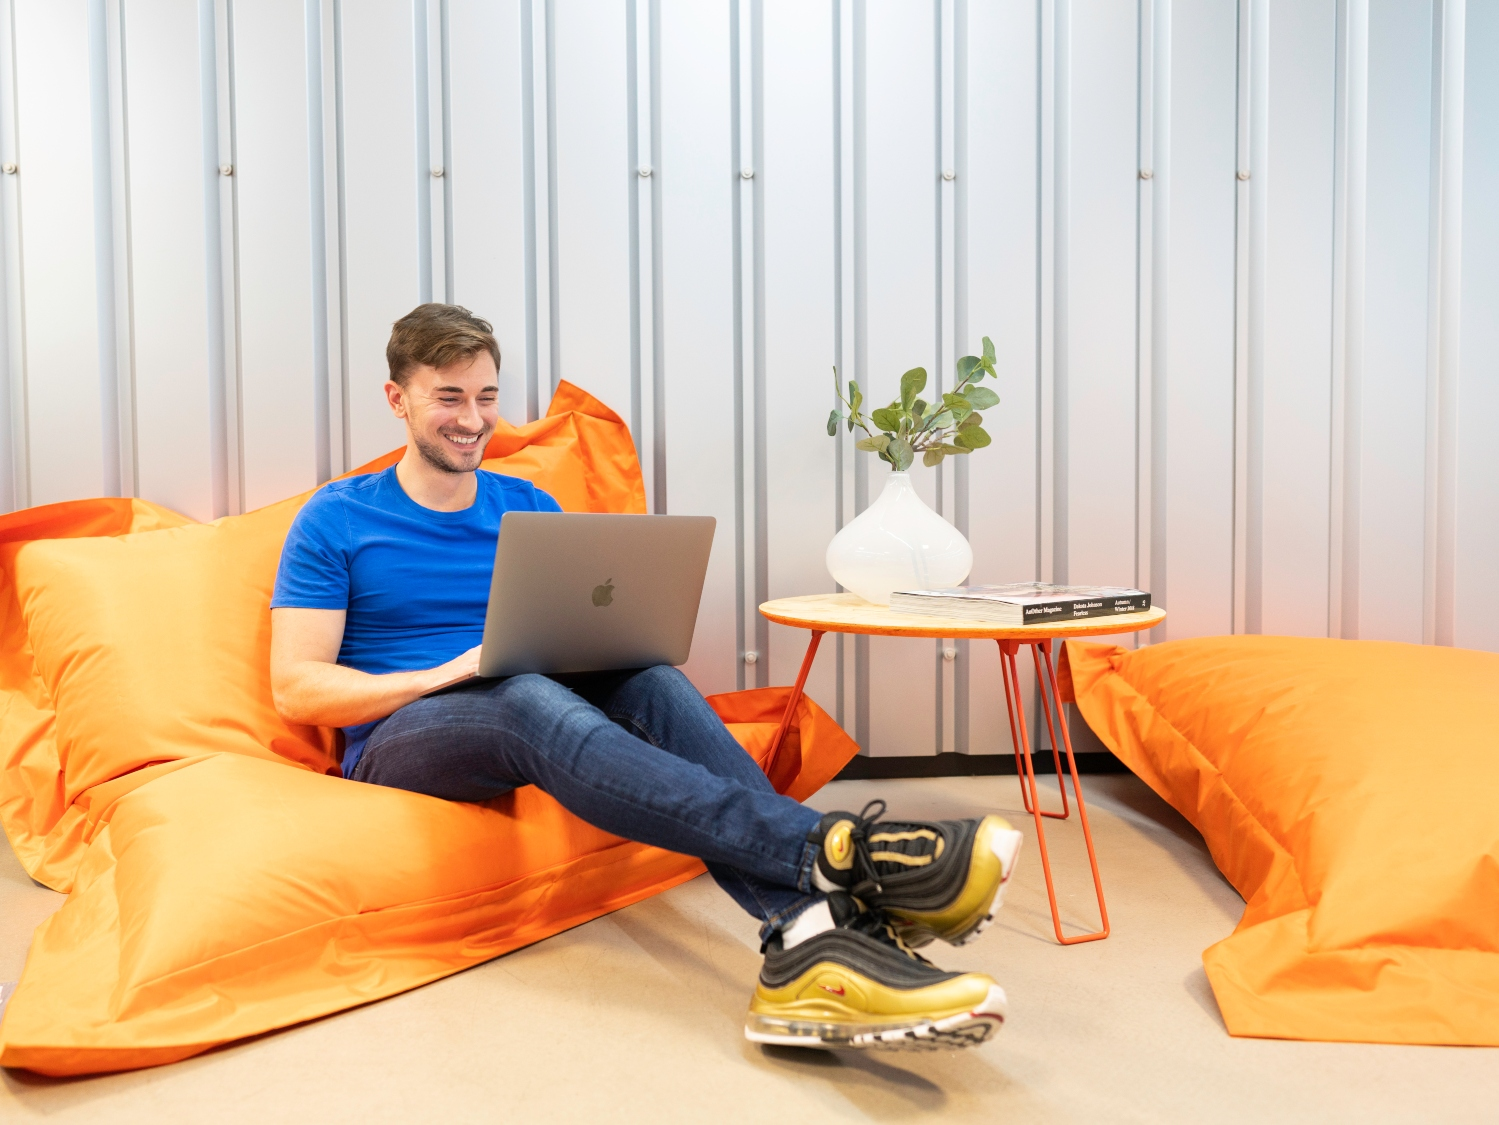 man using laptop on bean bag smiling